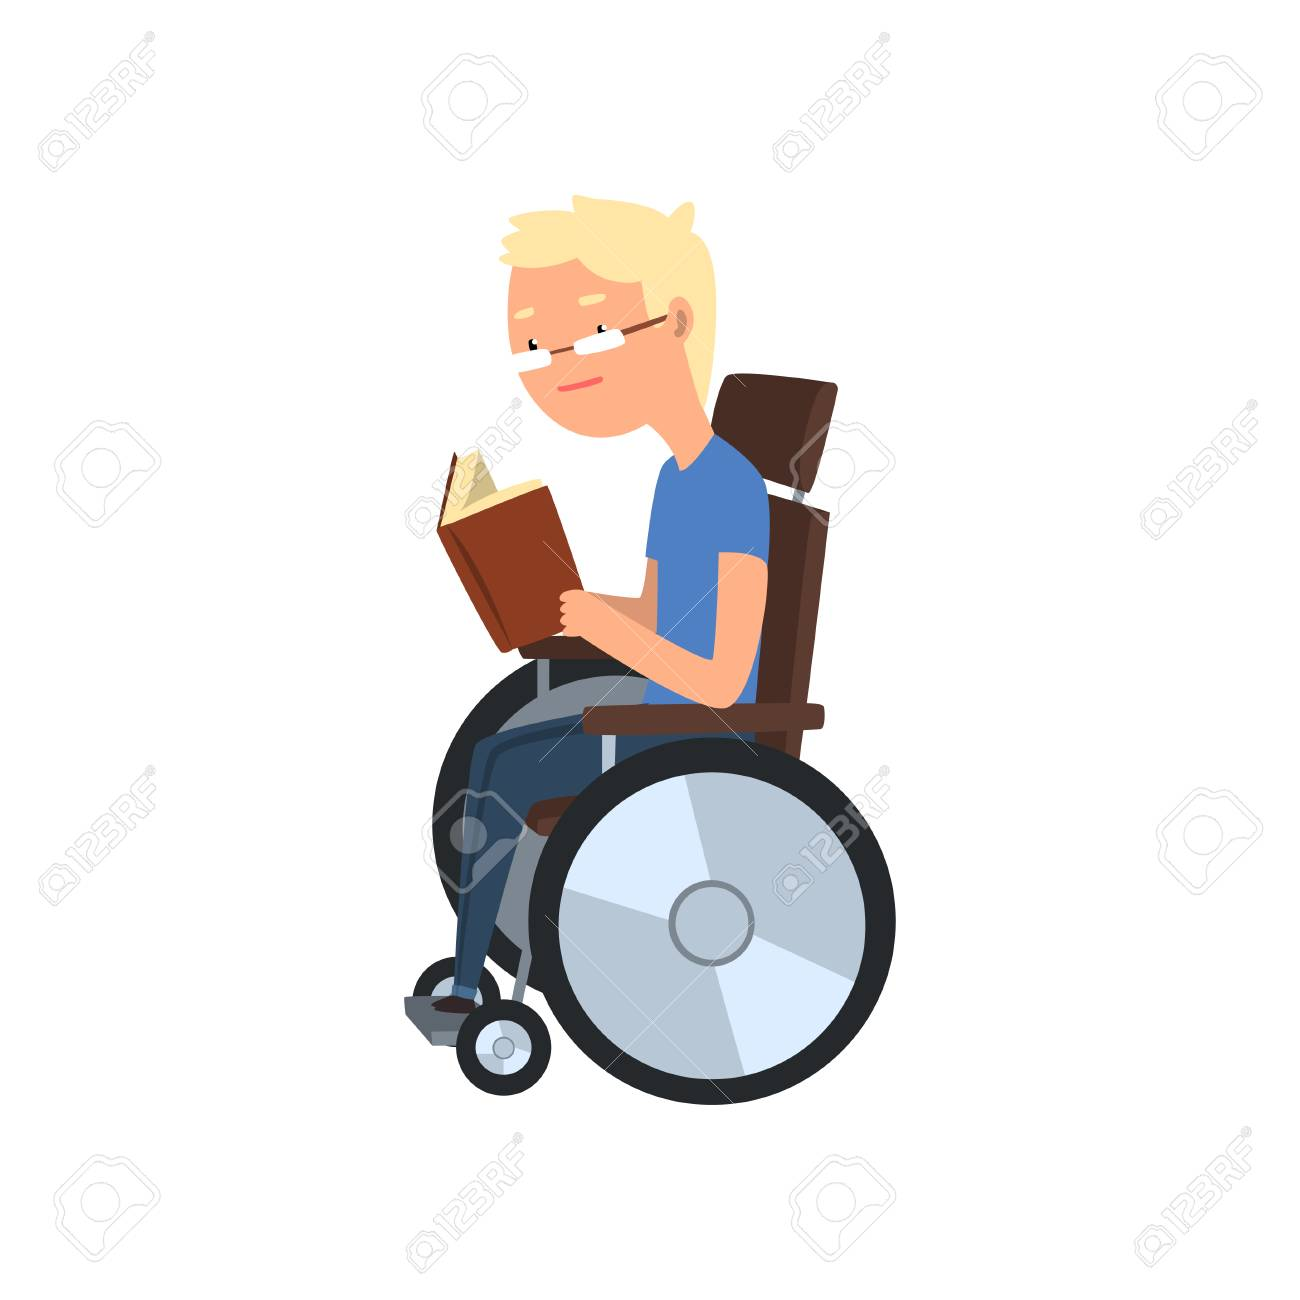 Disabled man in wheelchair reading a book, rehabilitation of disabled people concept vector Illustration on a white background - 101375865